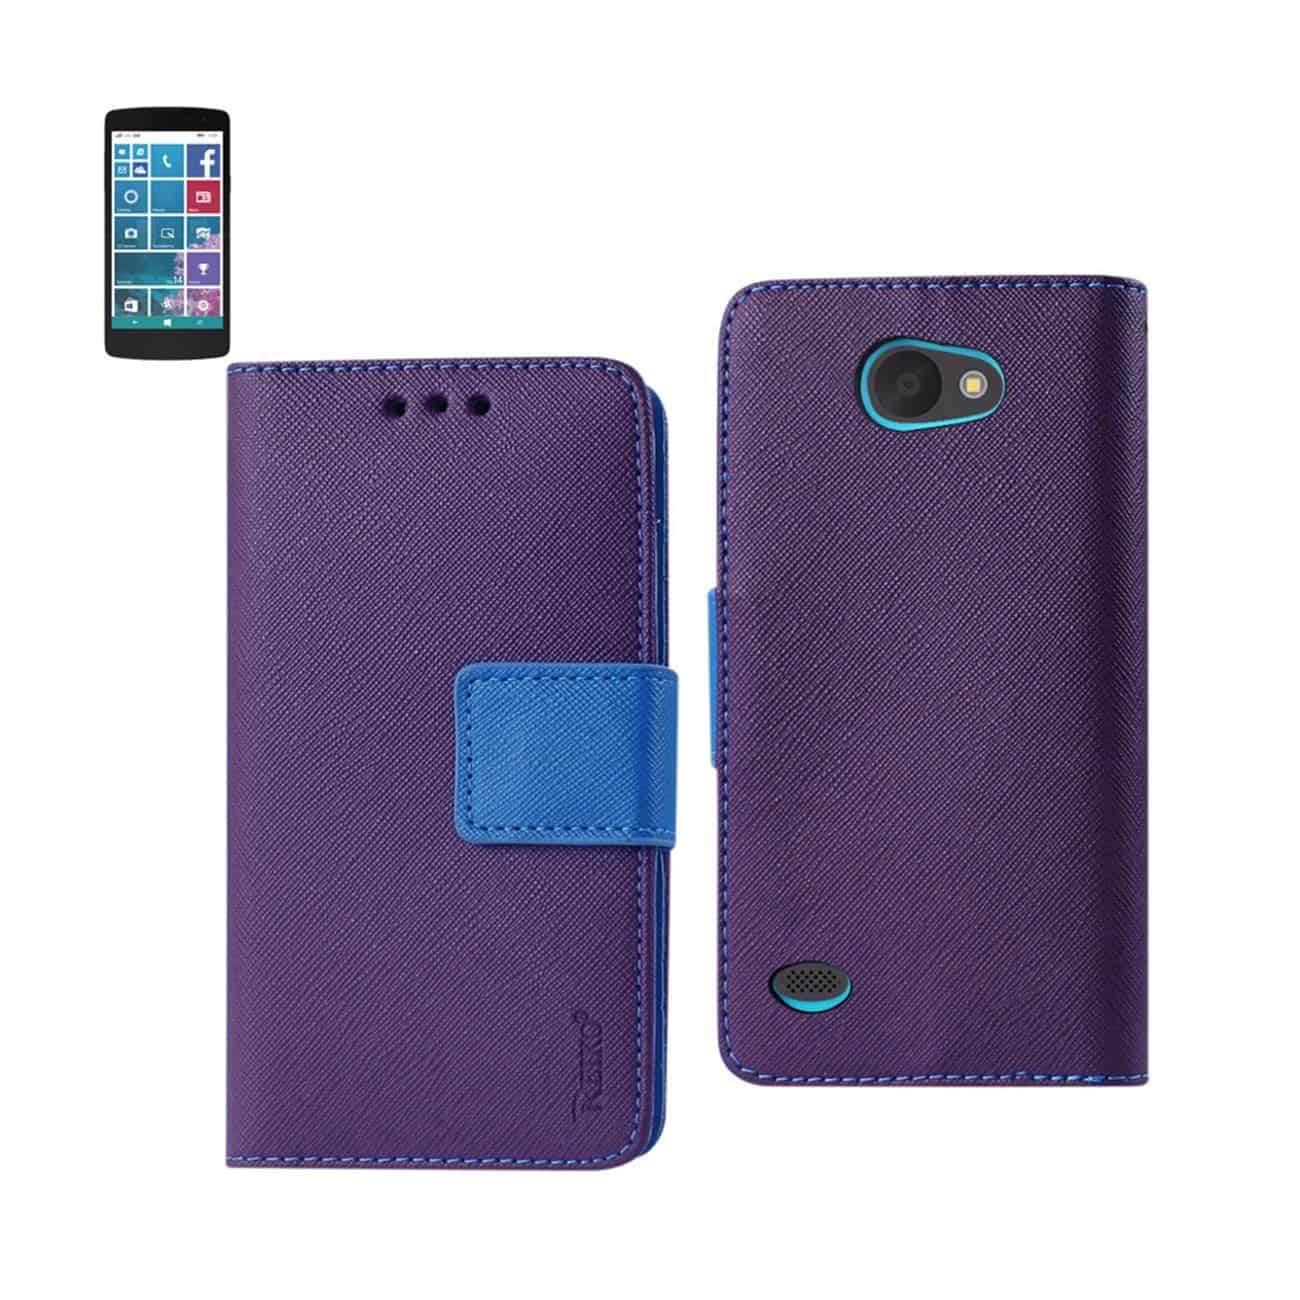 LG LANCET 3-IN-1 WALLET CASE IN NAVY